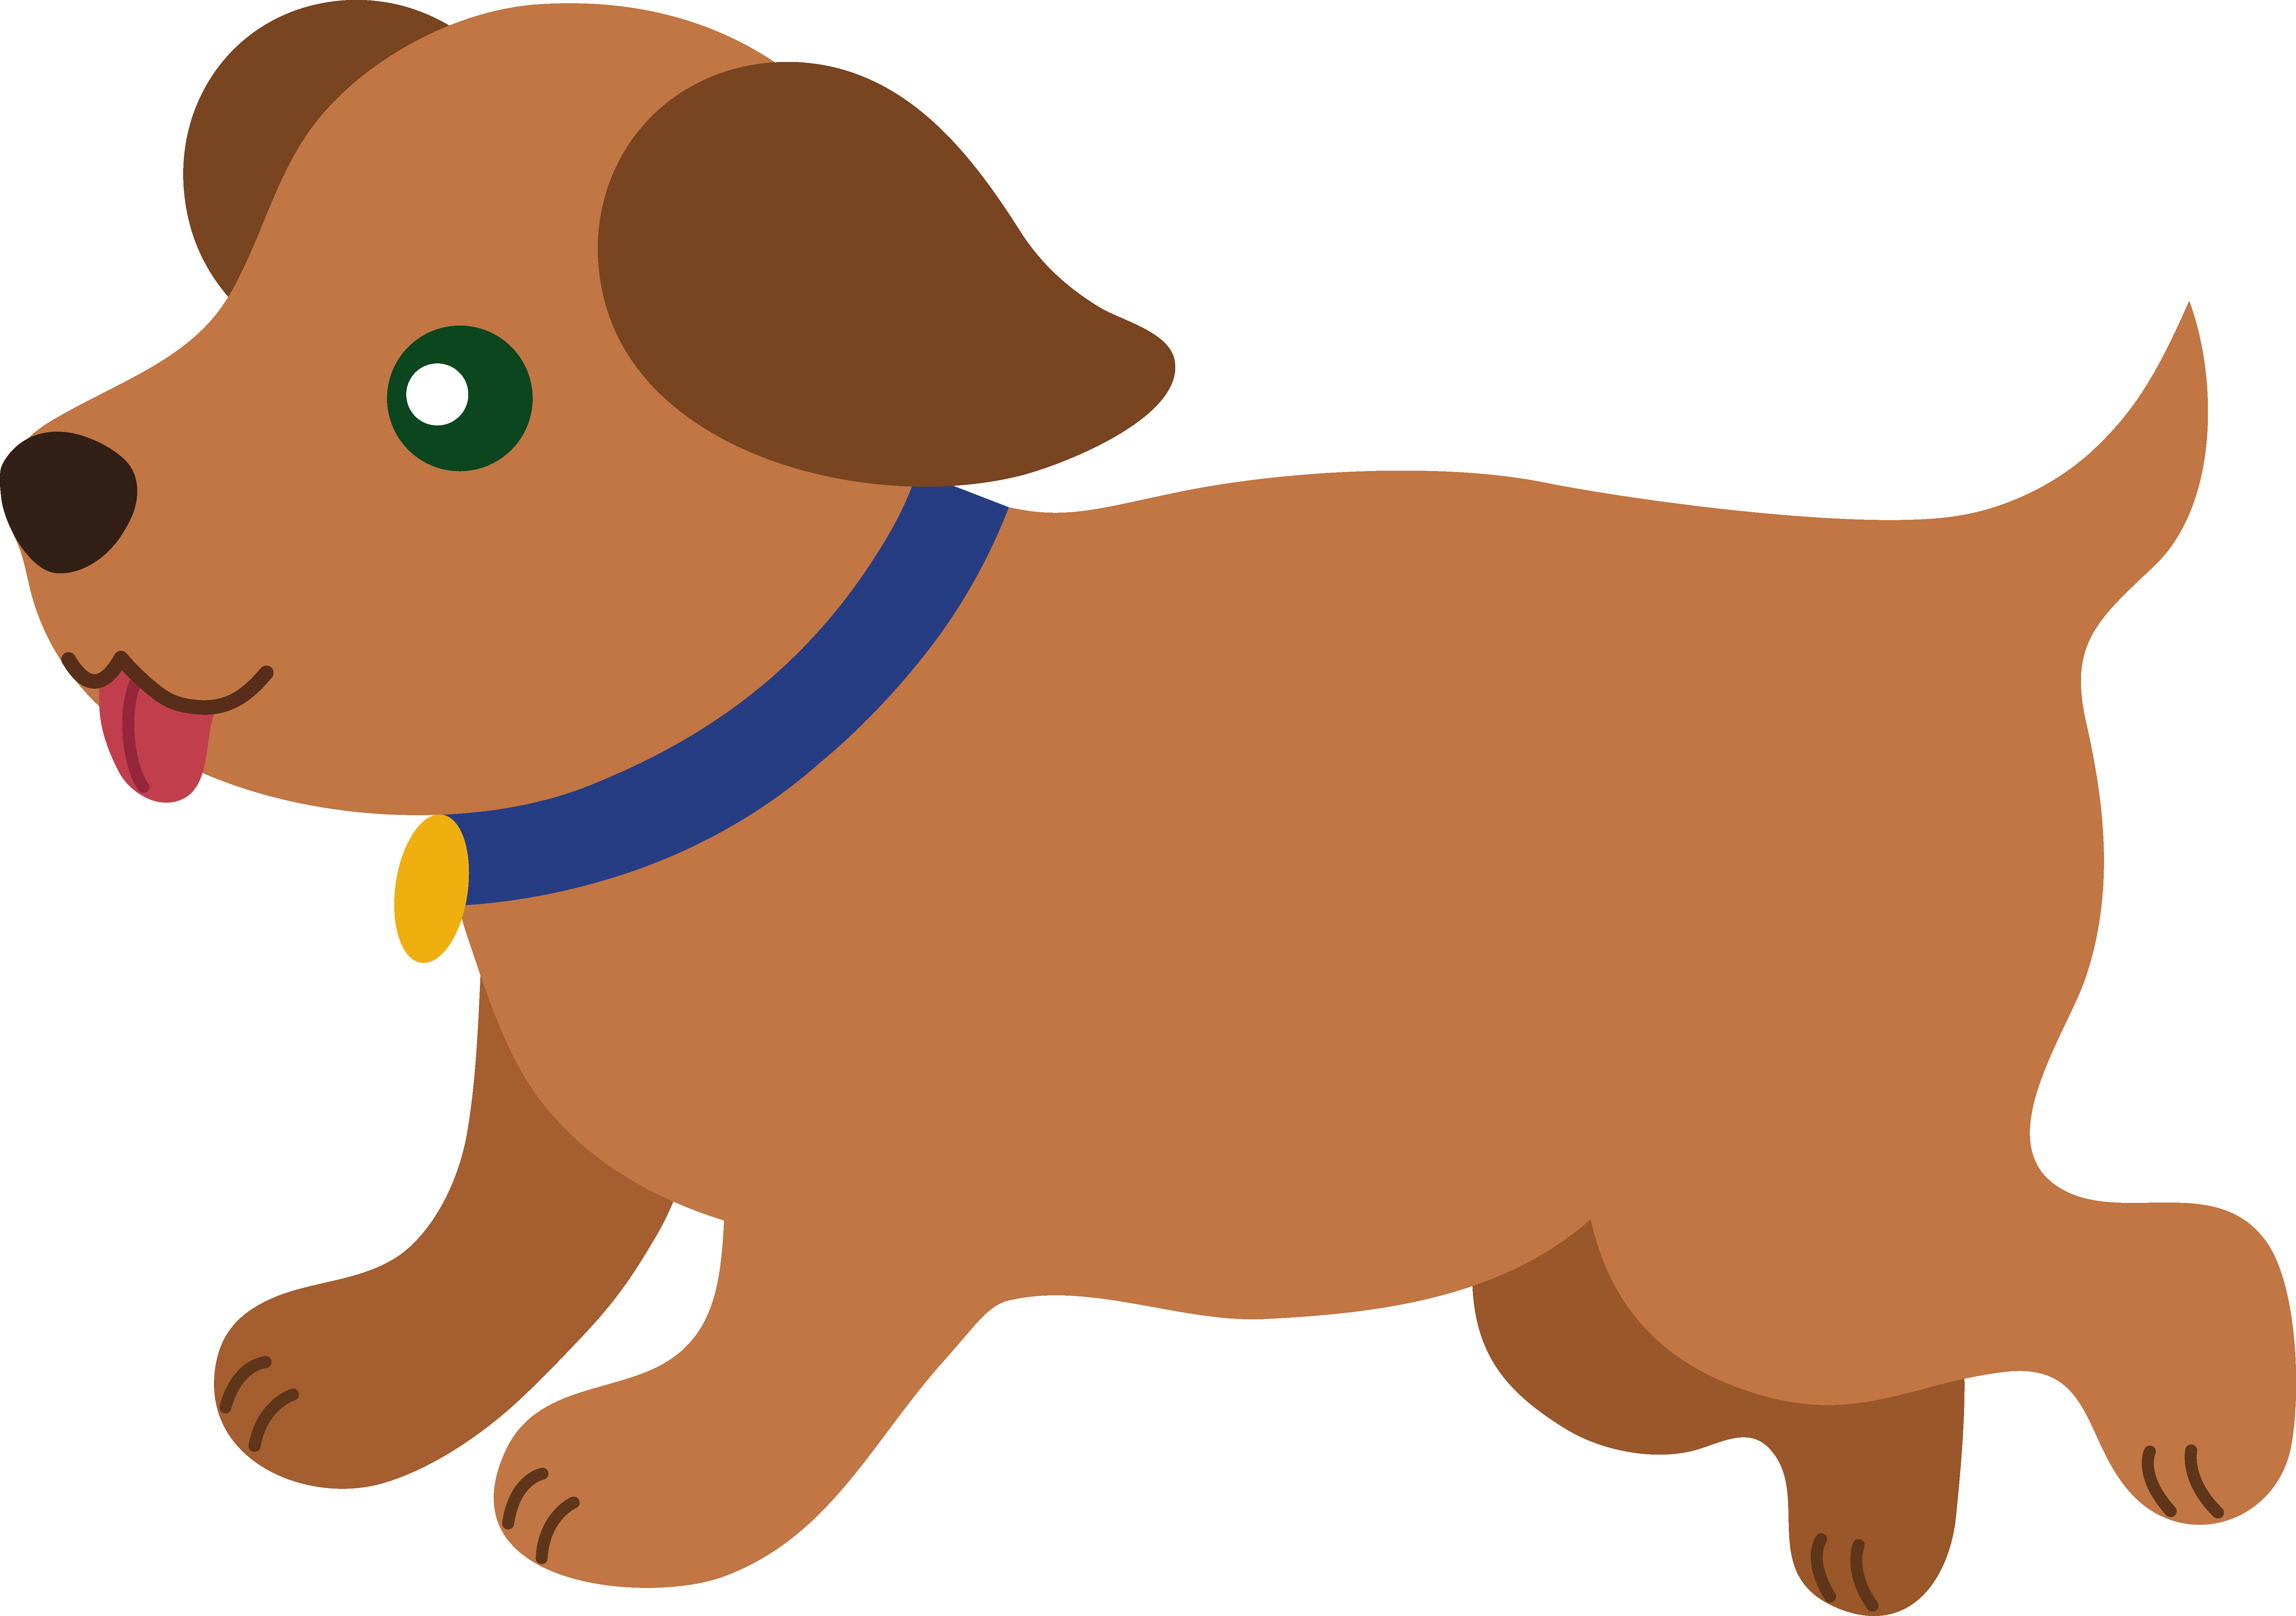 Cartoon dog clipart 5 » Clipart Portal.